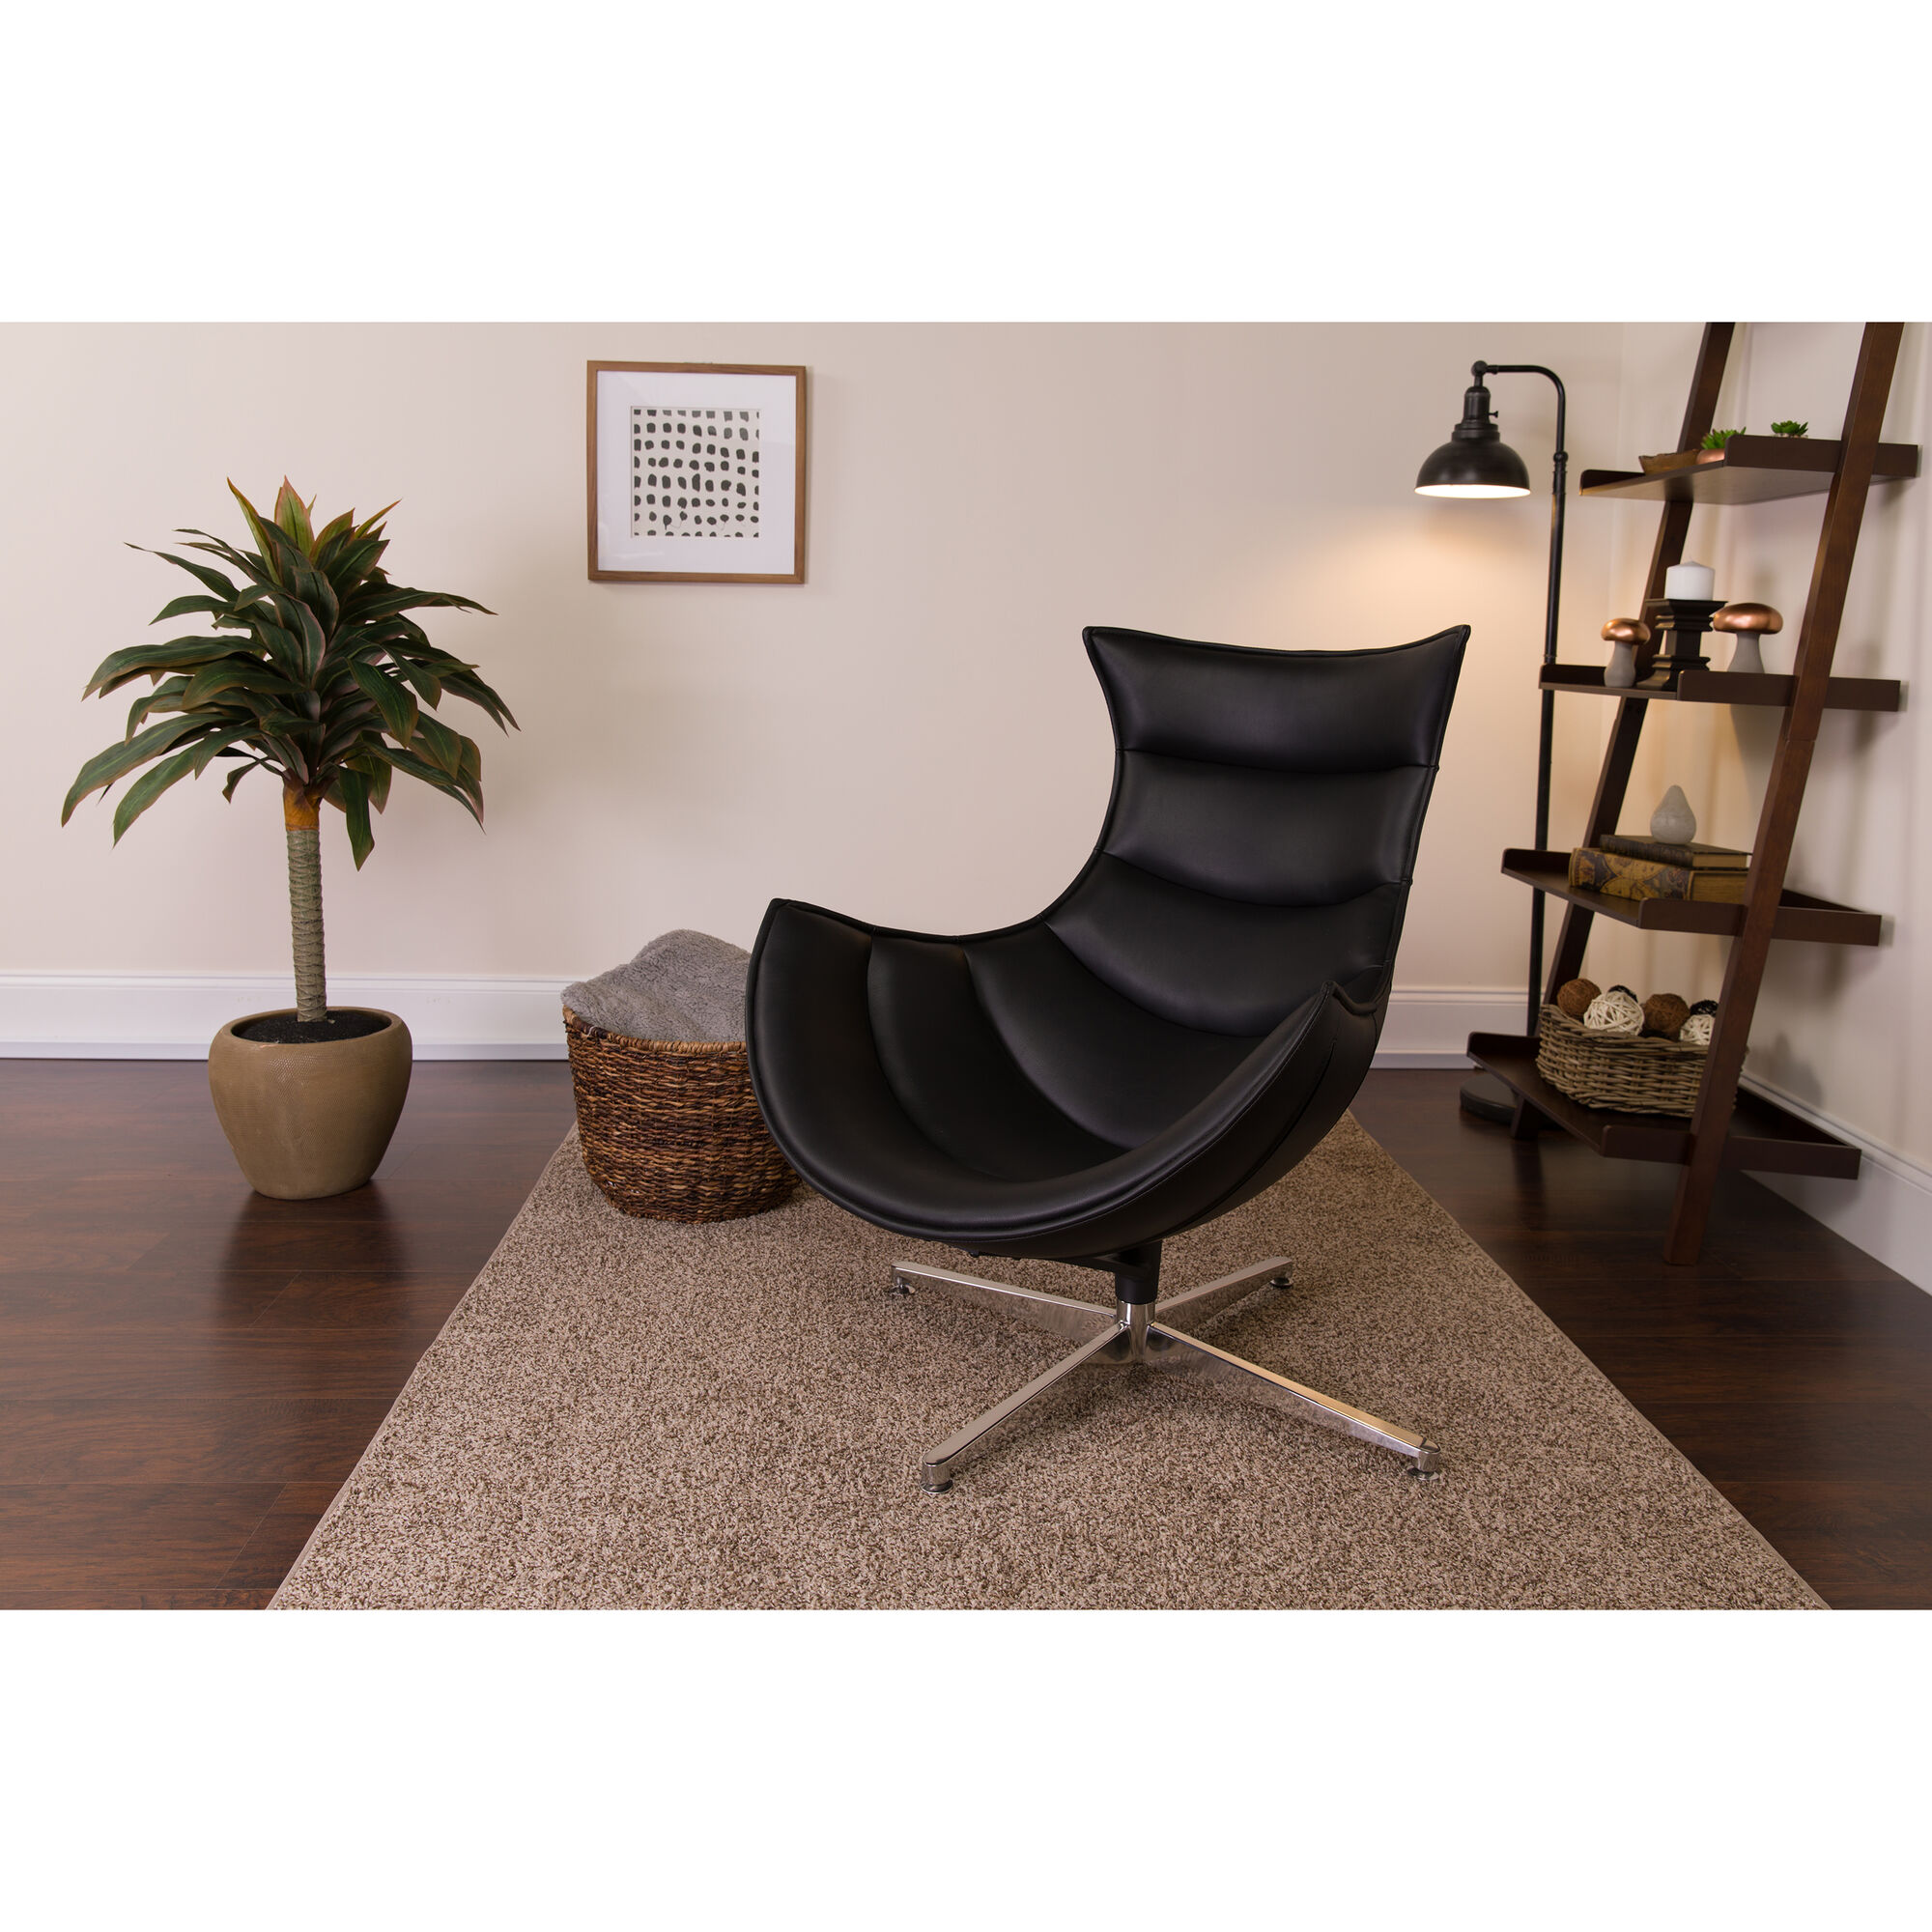 Strange Black Leather Swivel Cocoon Chair Bralicious Painted Fabric Chair Ideas Braliciousco